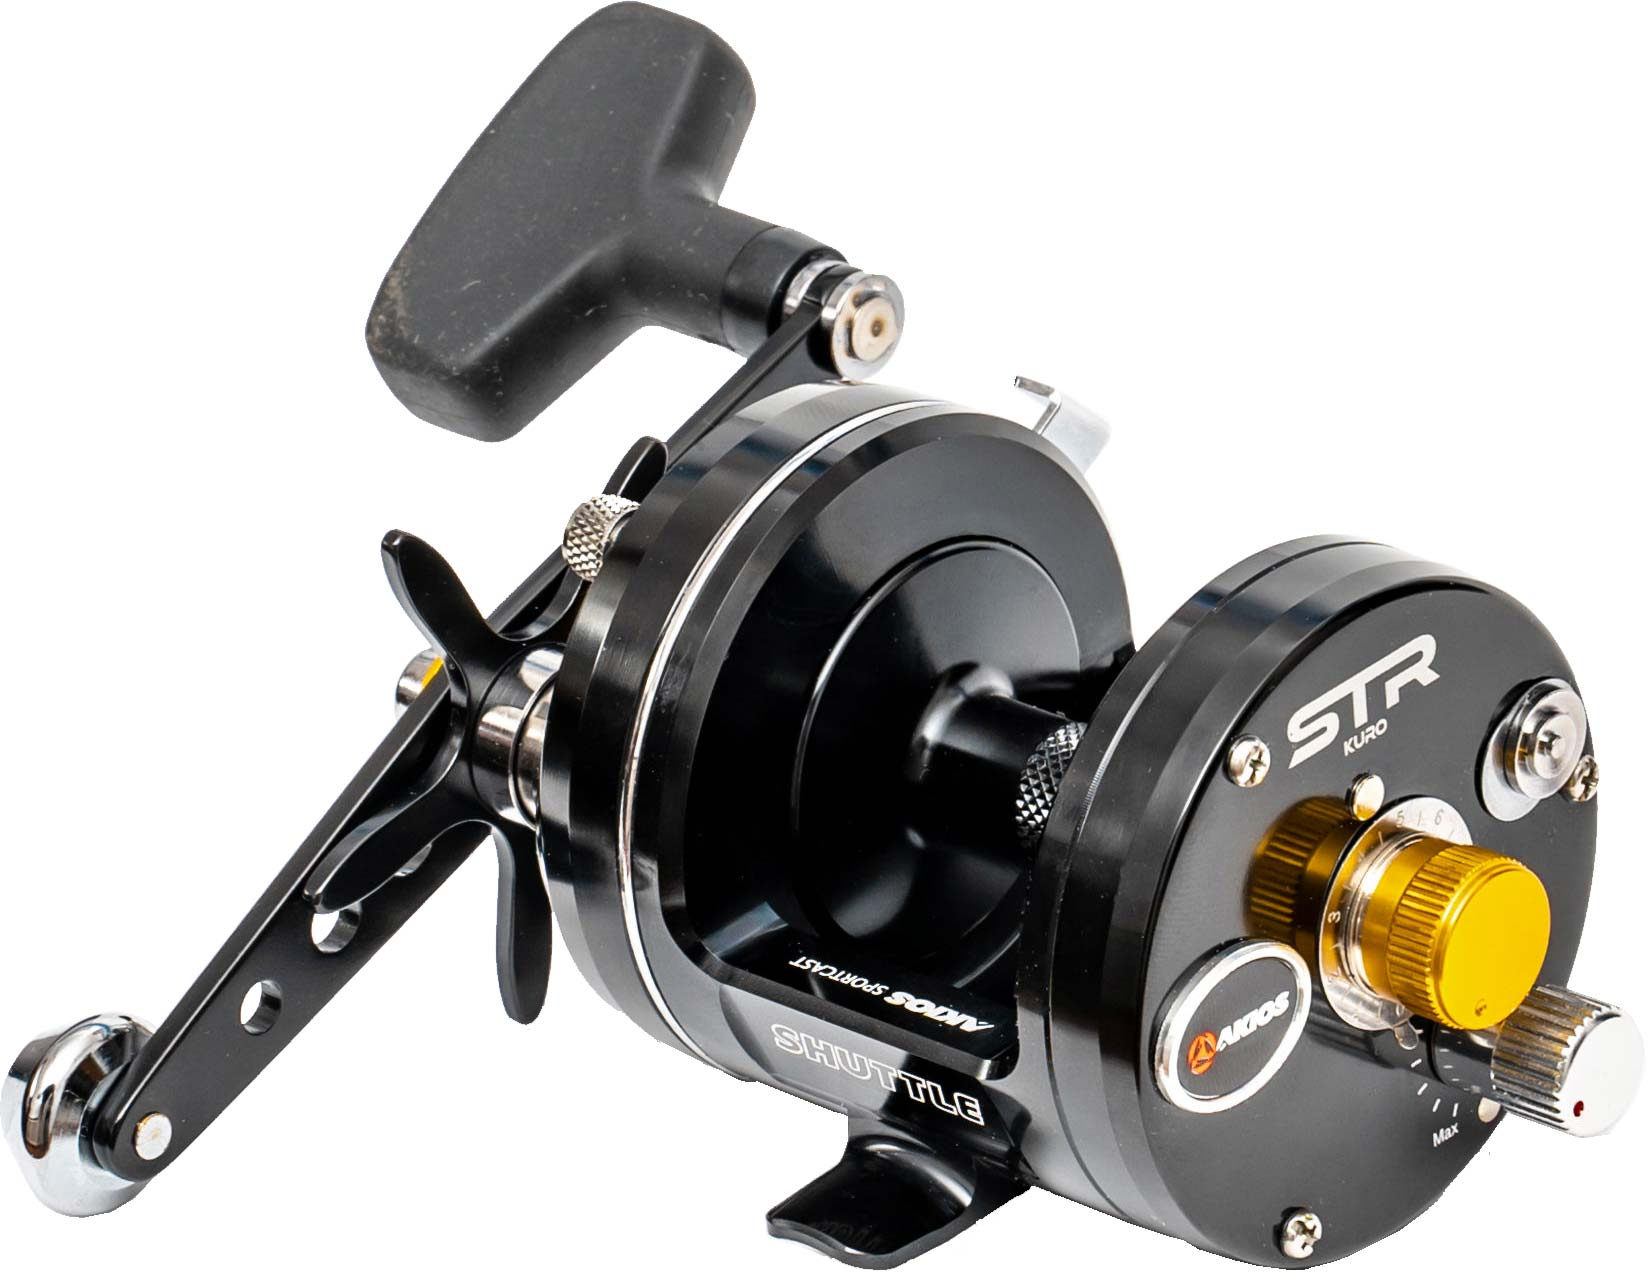 Akios 656 STR KURO Multiplier Reels